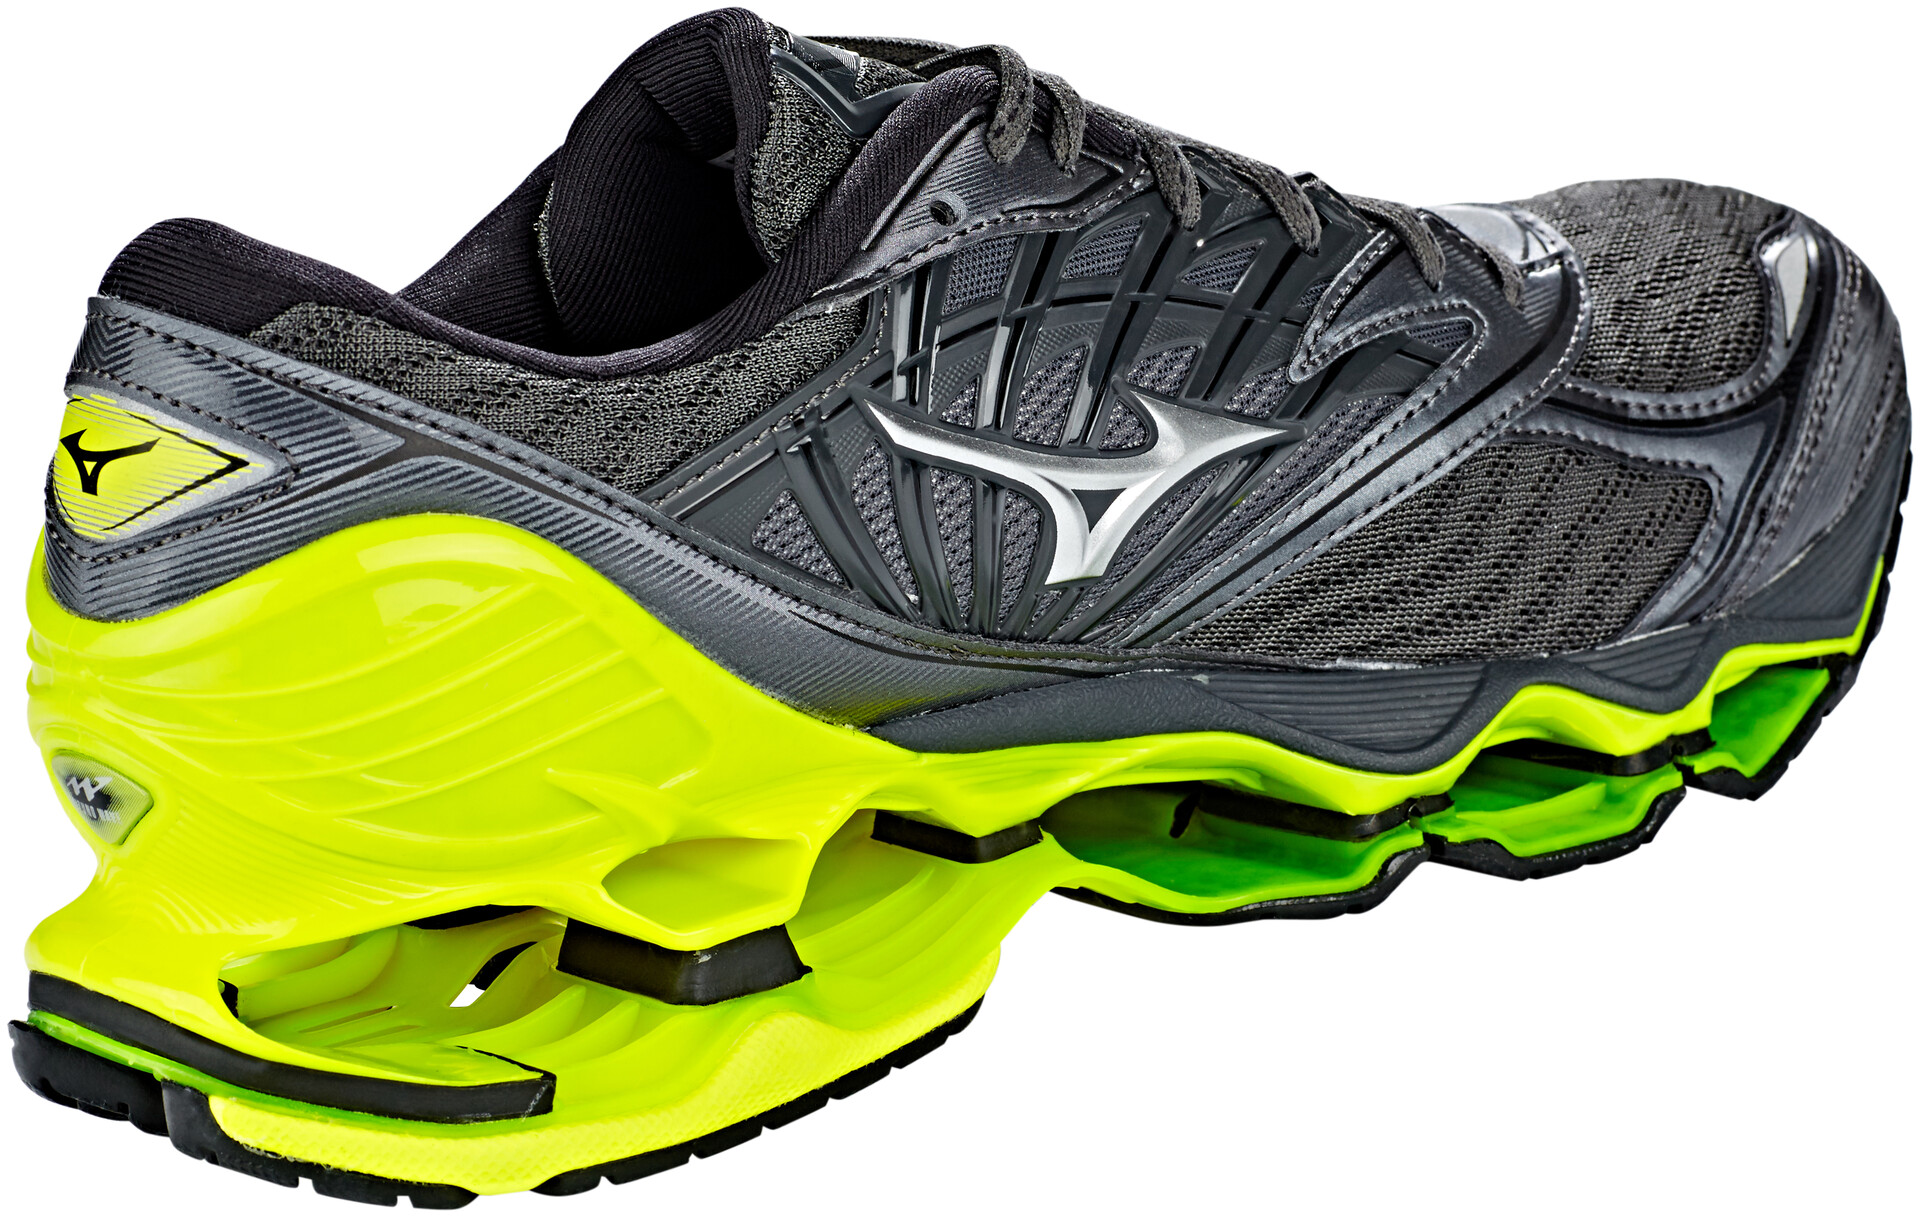 tenis mizuno wave prophecy 5 usa mexico wall vk plus